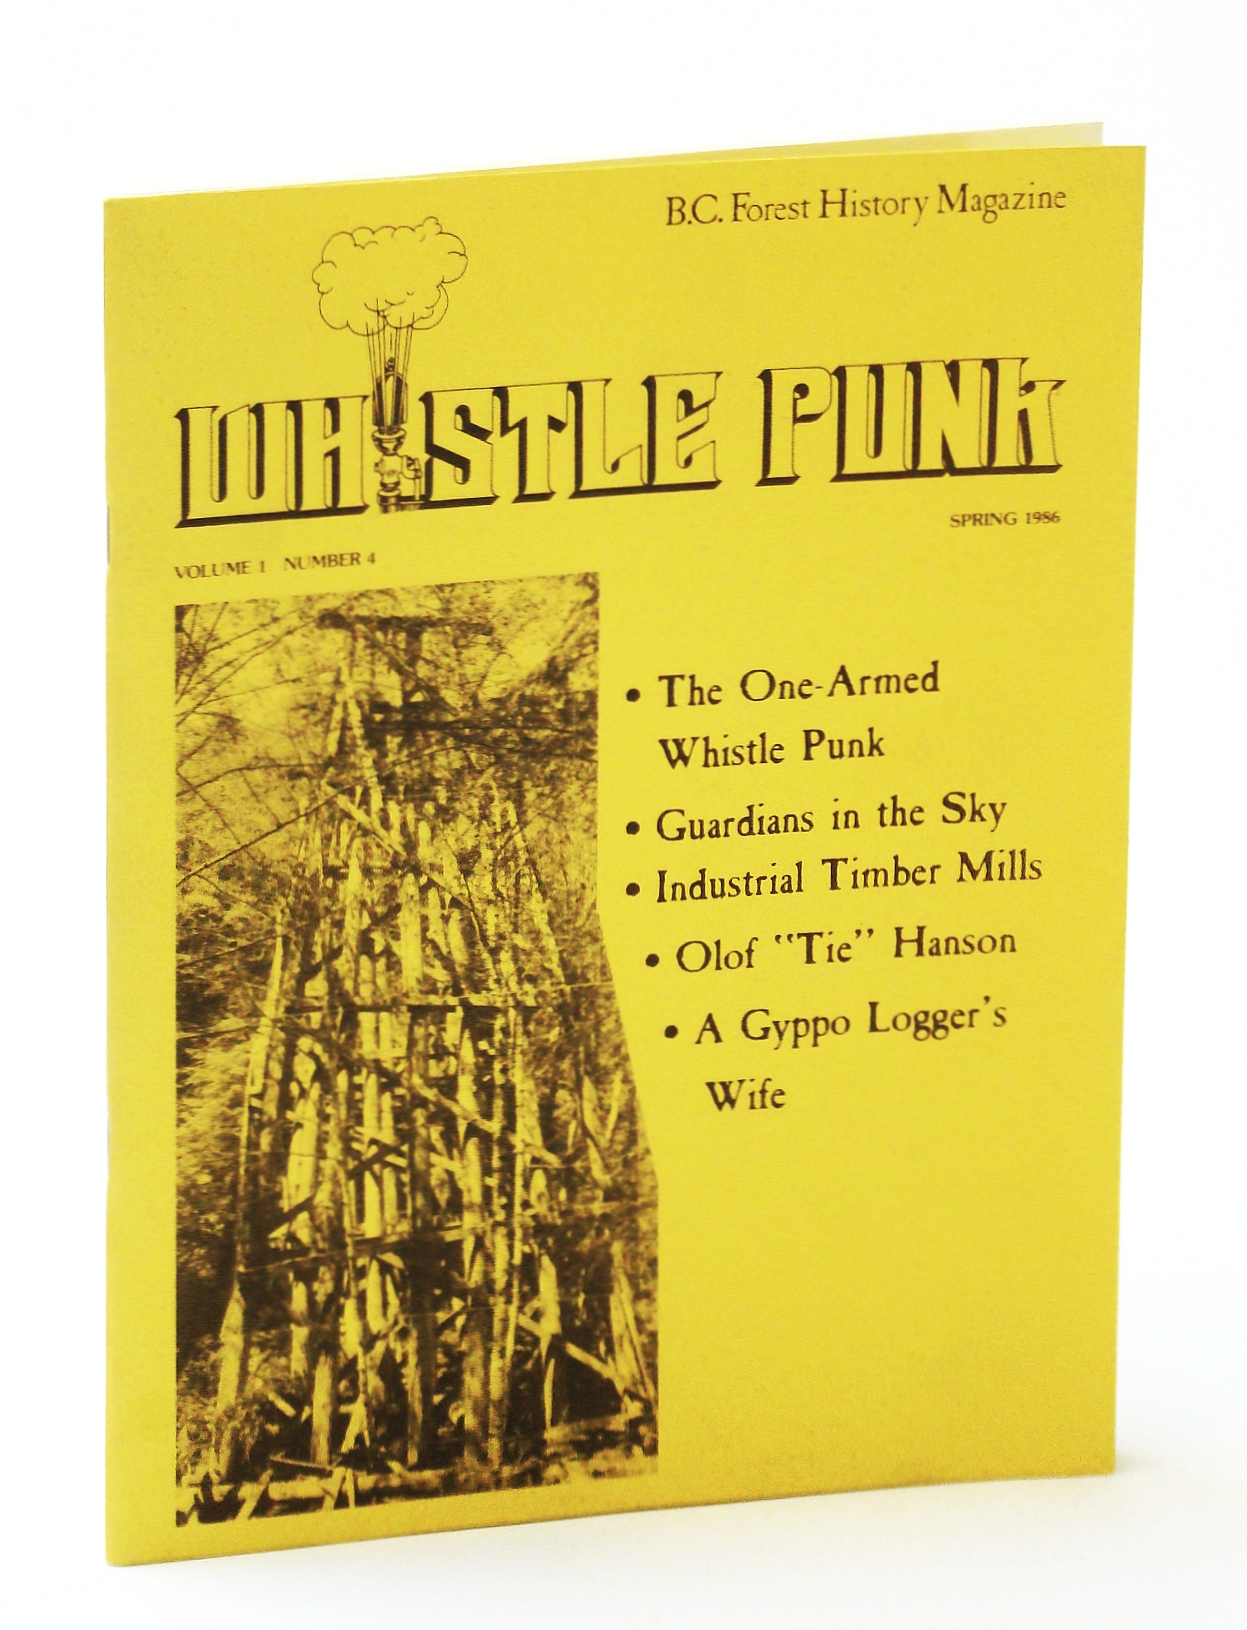 Image for Whistle Punk - B.C. Forest History Magazine, Spring 1986, Volume 1, Number 4